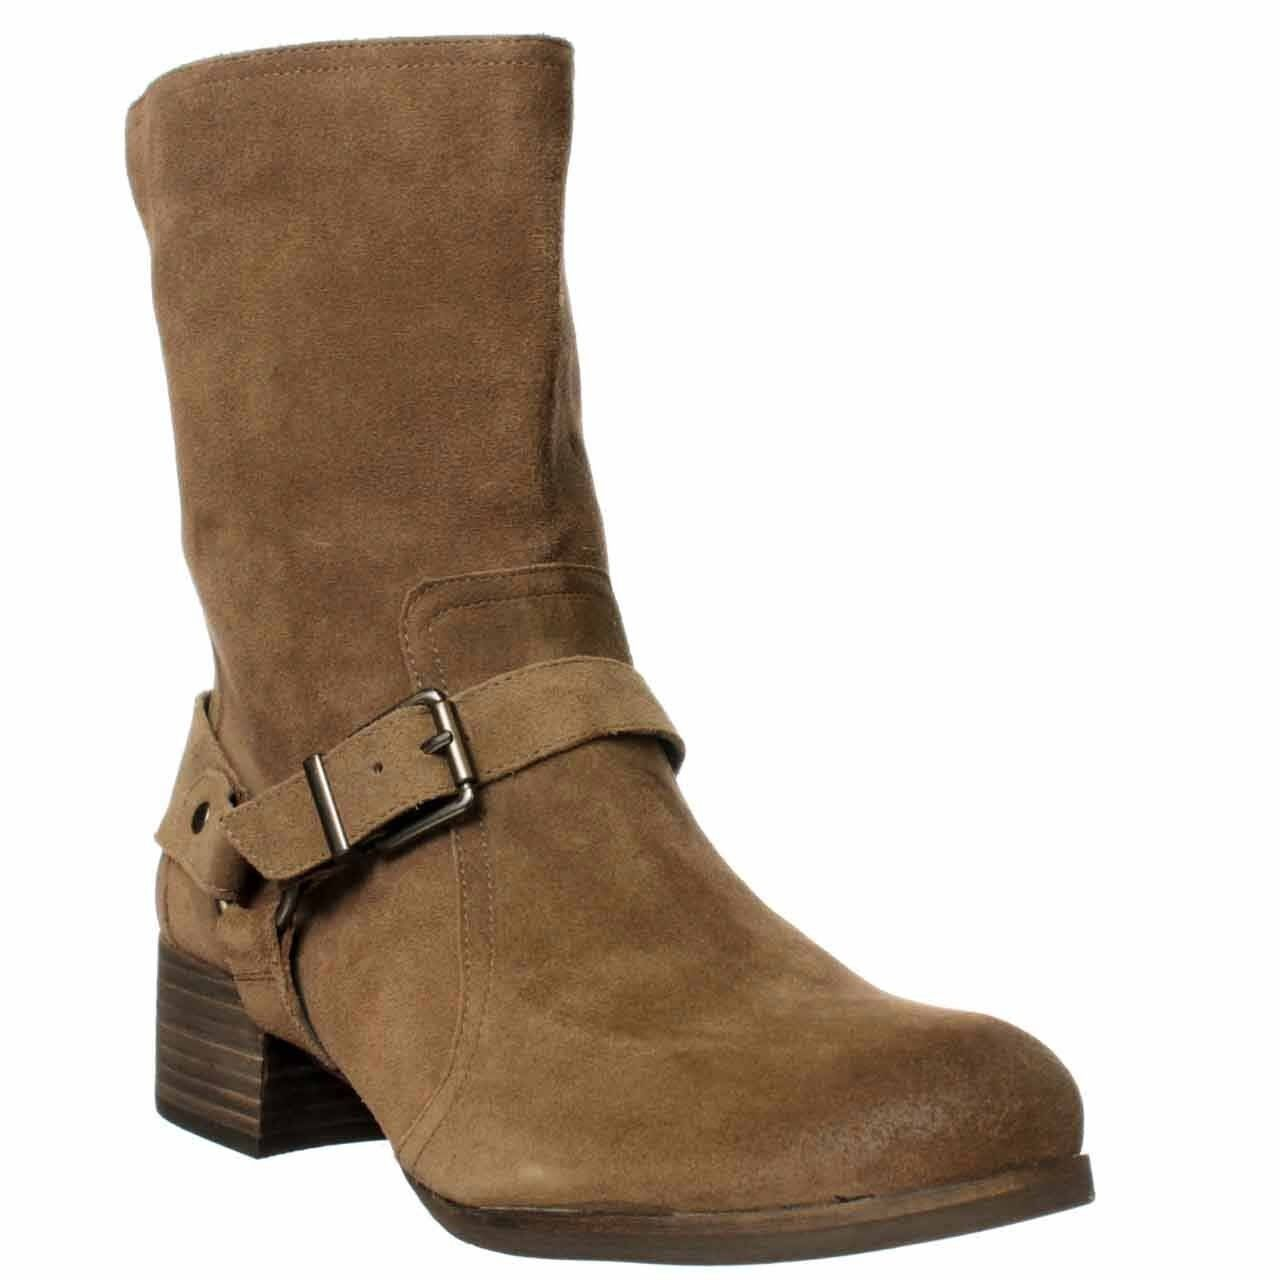 Jessica Simpson Annine Veronica Suede Womens Fashion Ankle Boots Mink 6.5M New